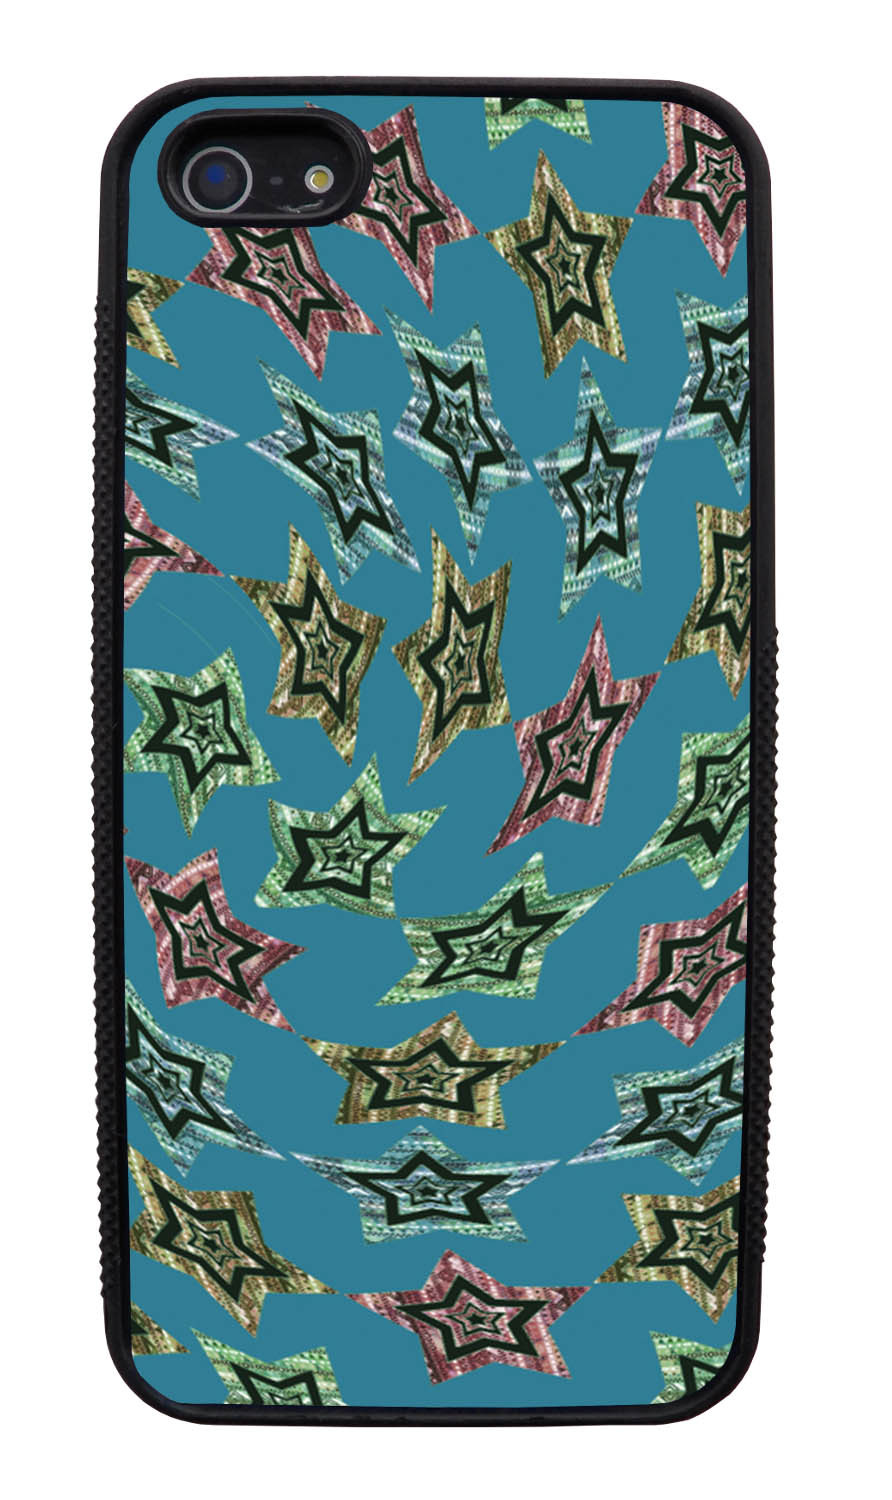 Apple iPhone 5 / 5S Aztec Case - Whirlwind Stars - Geometric - Black Slim Rubber Case